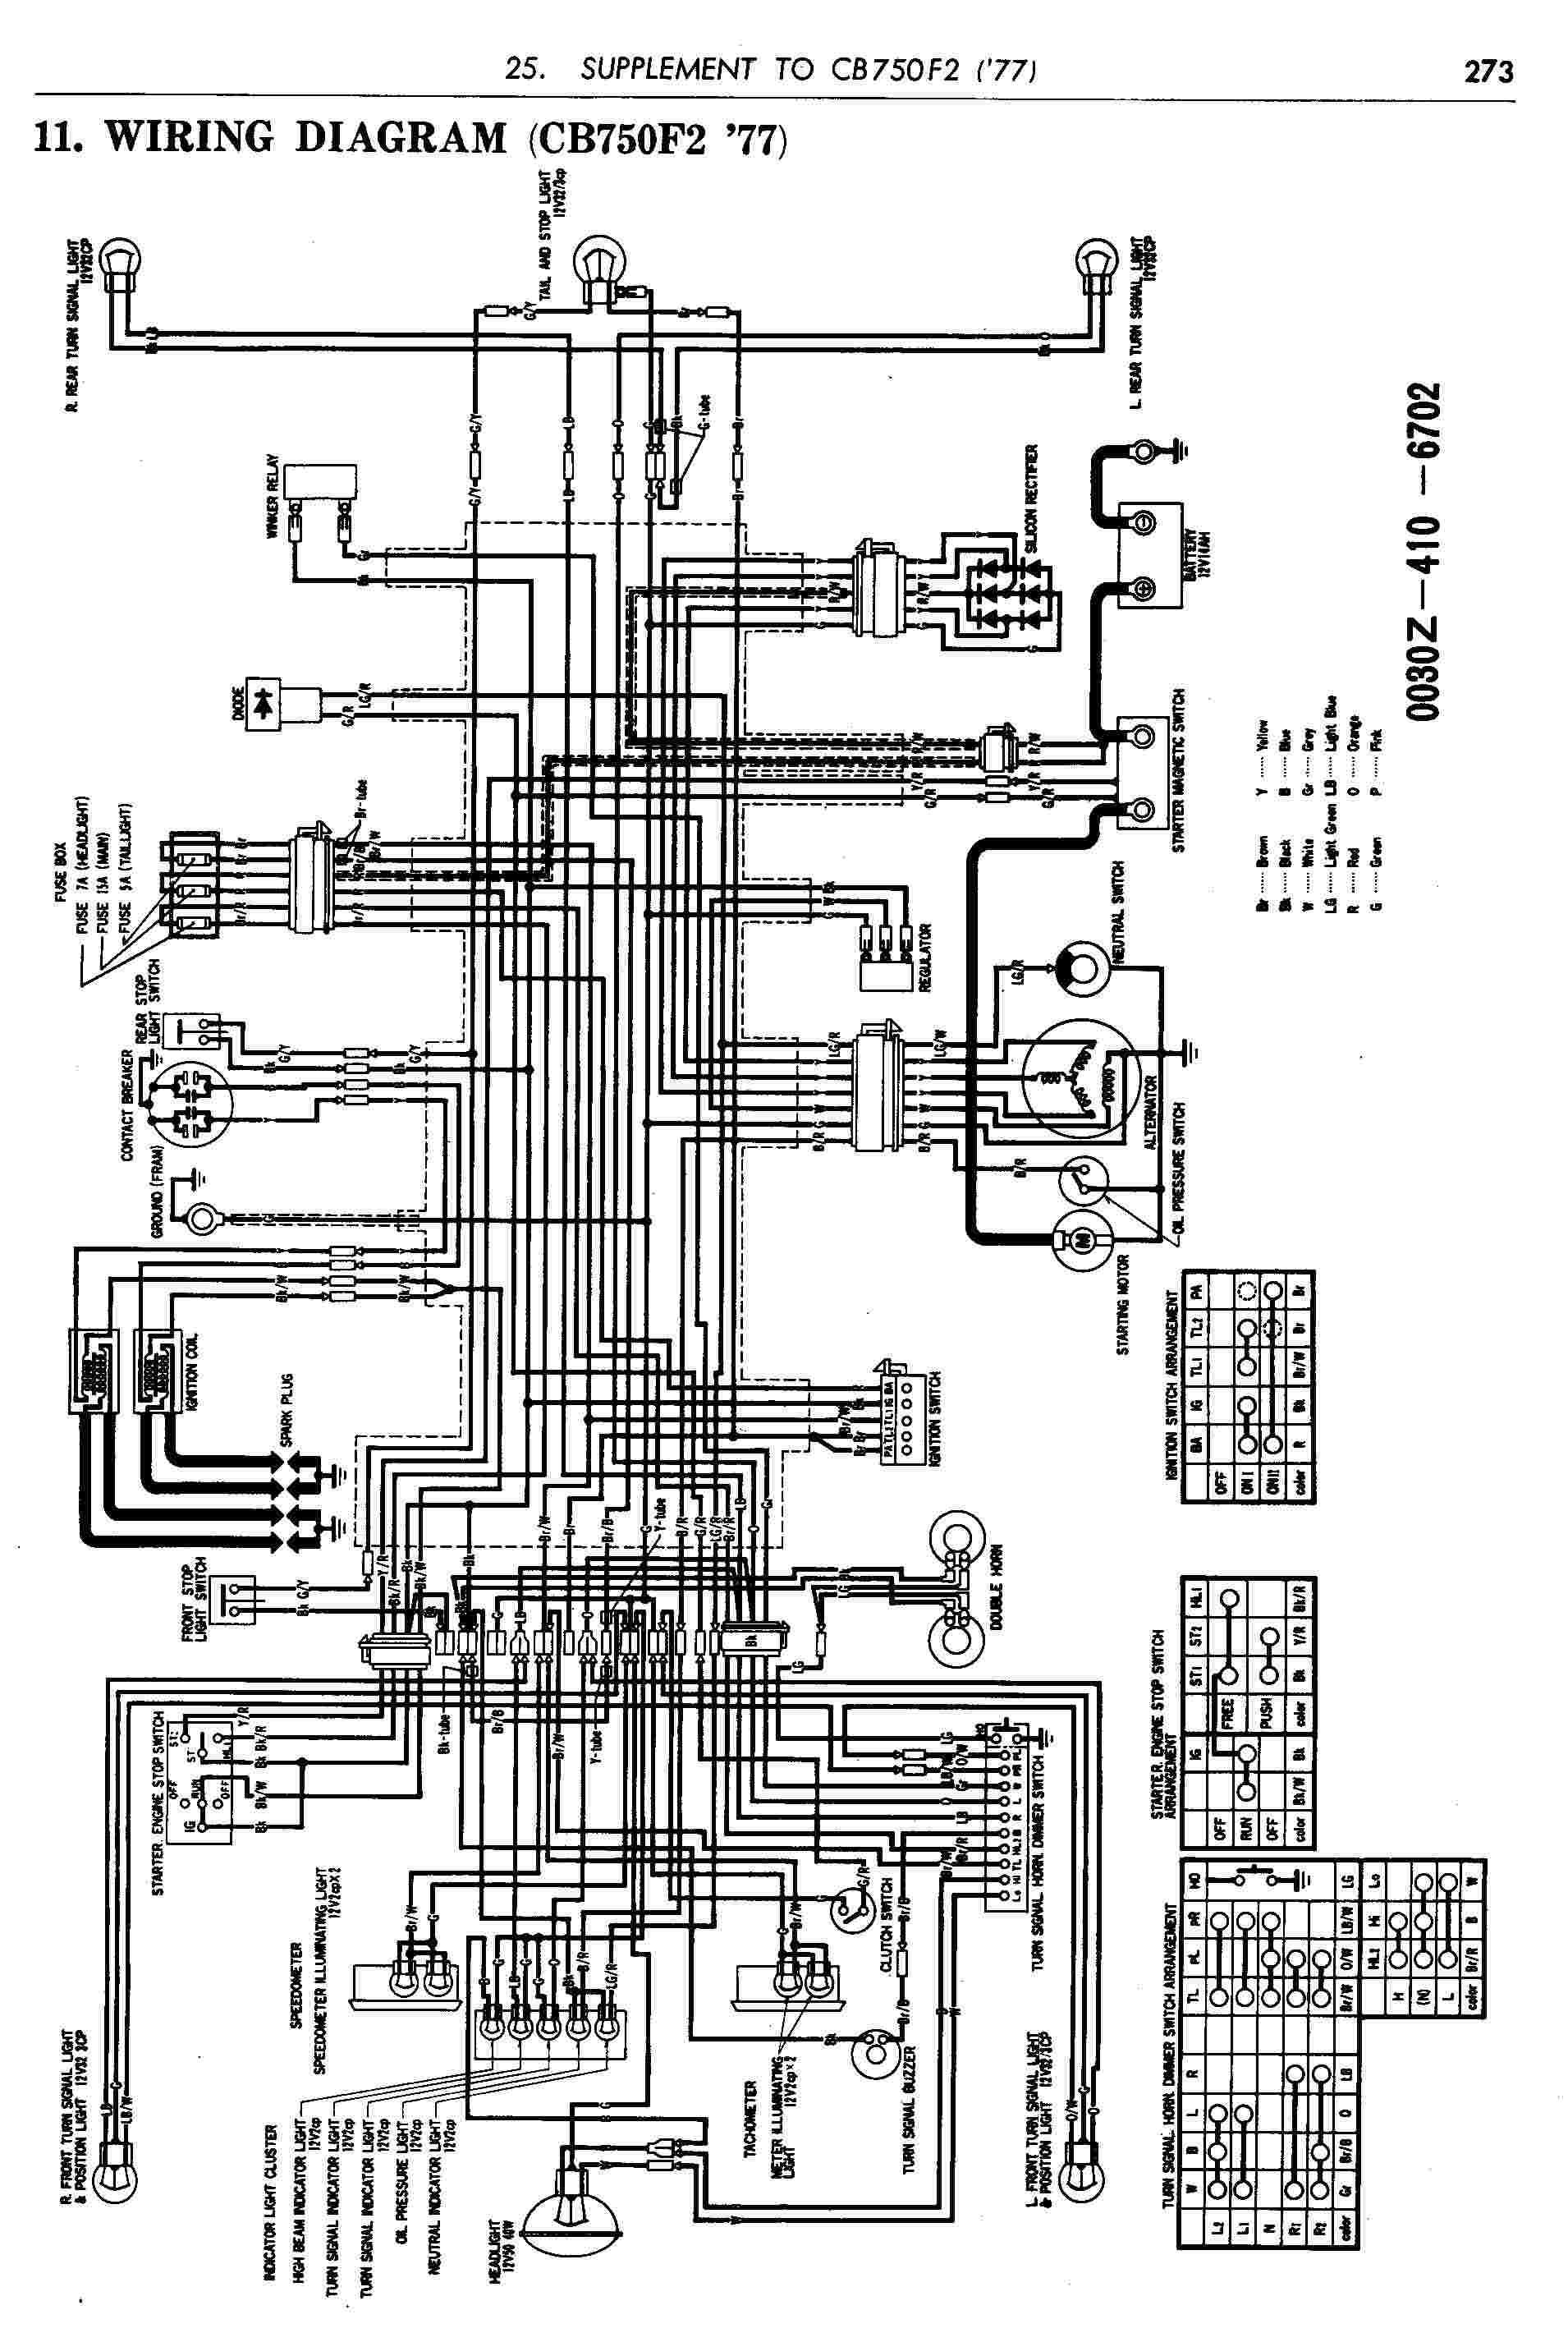 honda cb 750 wiring diagram 27 wiring diagram images wiring diagrams  panicattacktreatment co 1975 Honda CB750 Wiring-Diagram for Starter  Silinoid CB750 ...